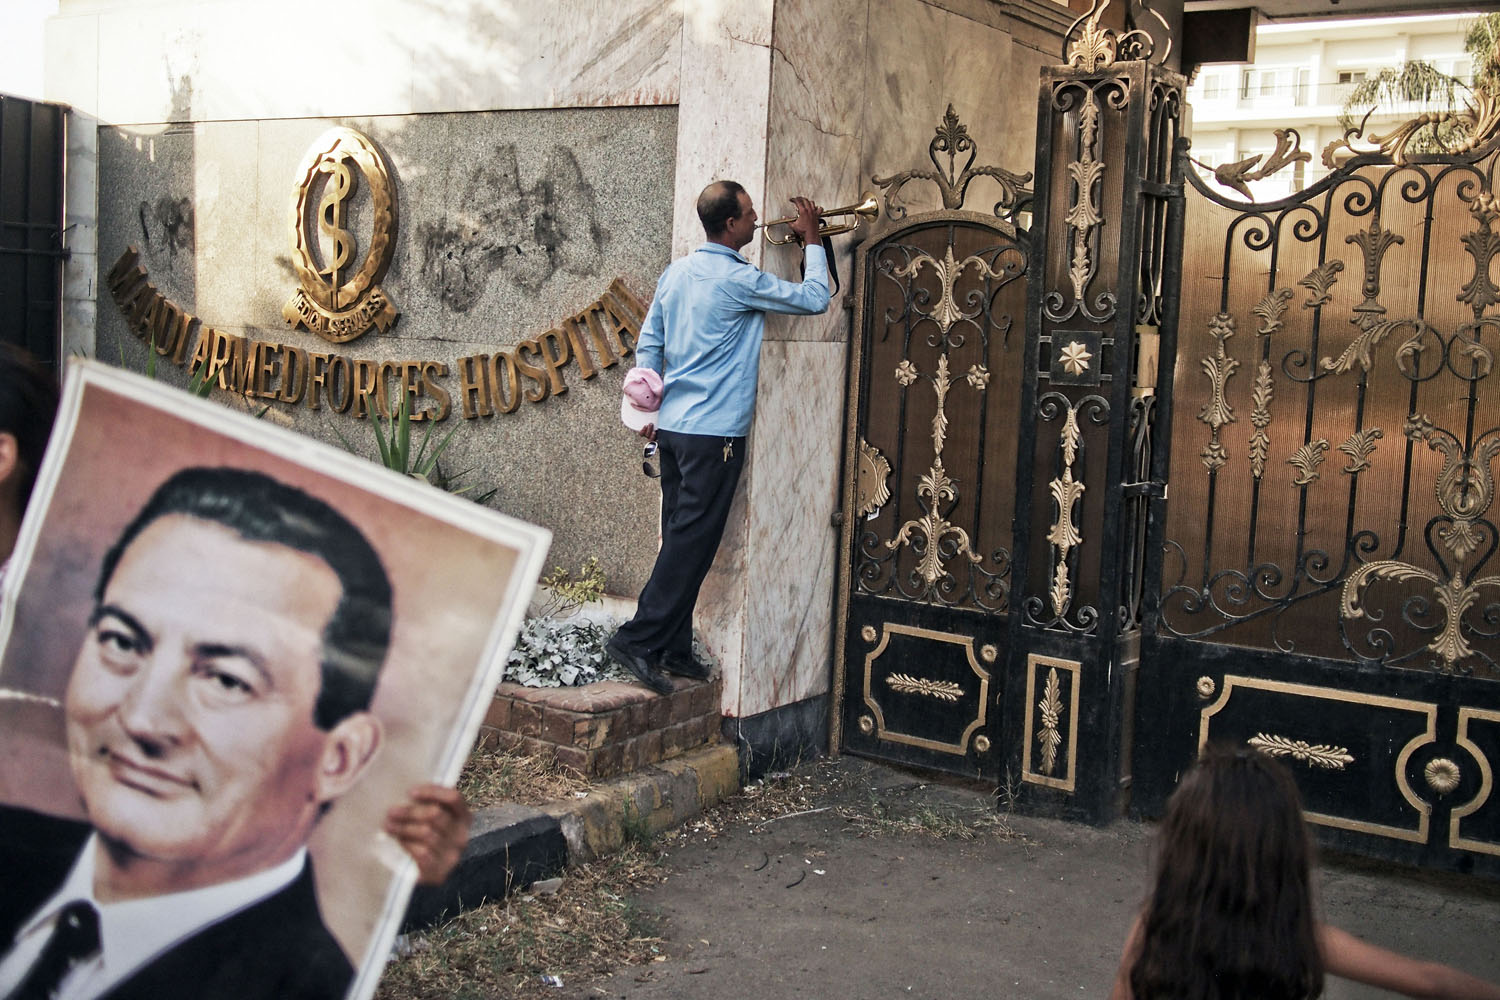 Aug. 22, 2013. A supporter of former Egyptian President Hosni Mubarak plays the trumpet at the gates of the Maadi Military Hospital where Mr. Mubarak was admited after being released from Tora Prison on the outskirts of Cairo.